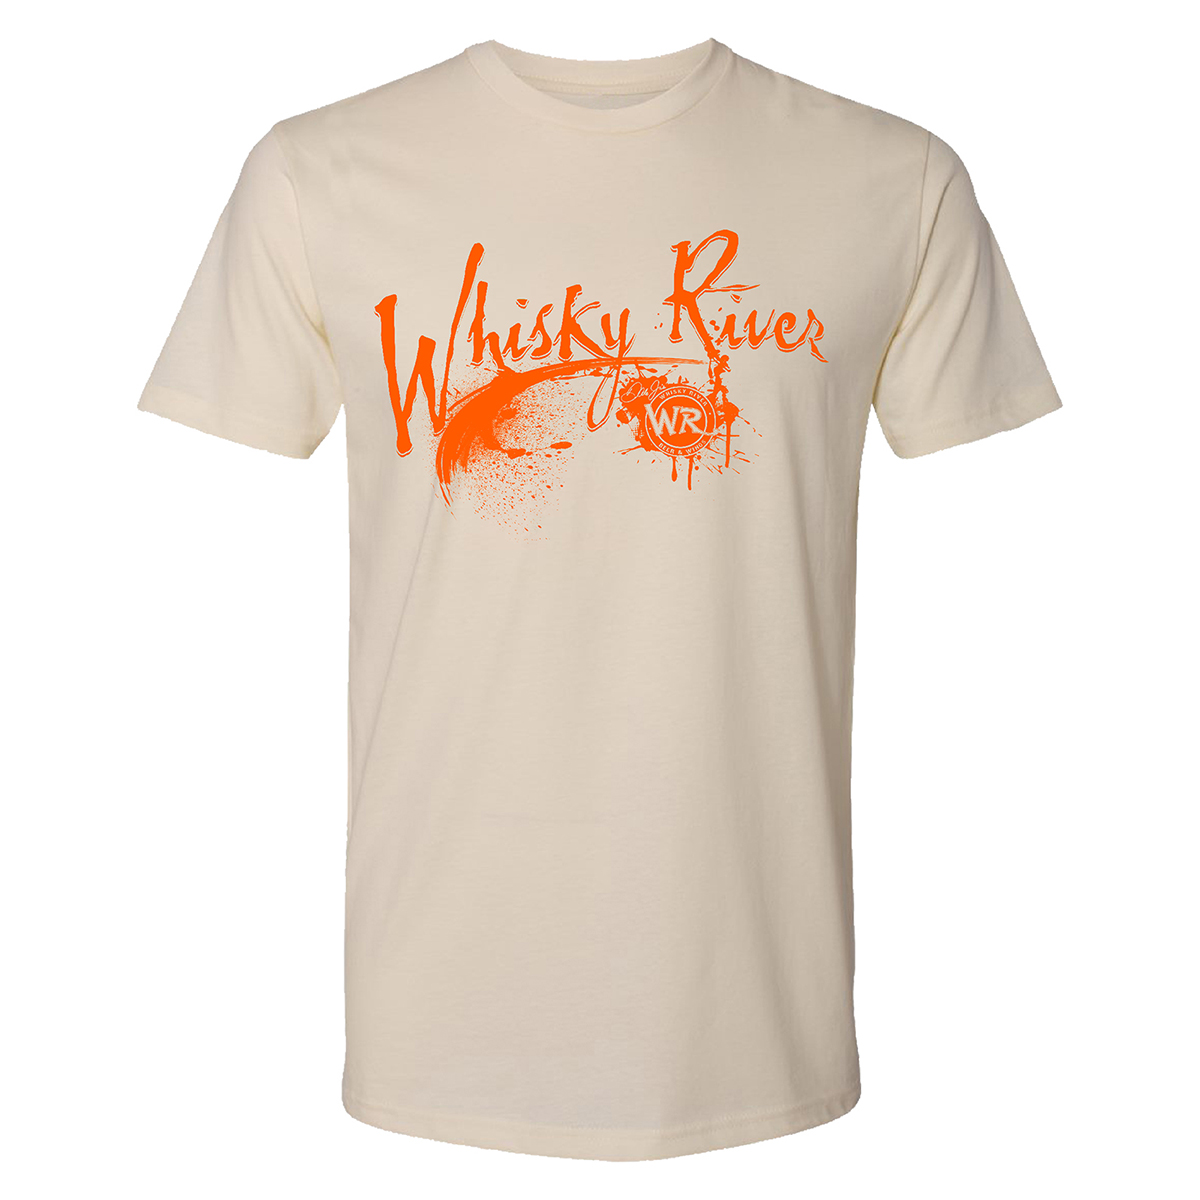 Whisky River Paintball T-shirt